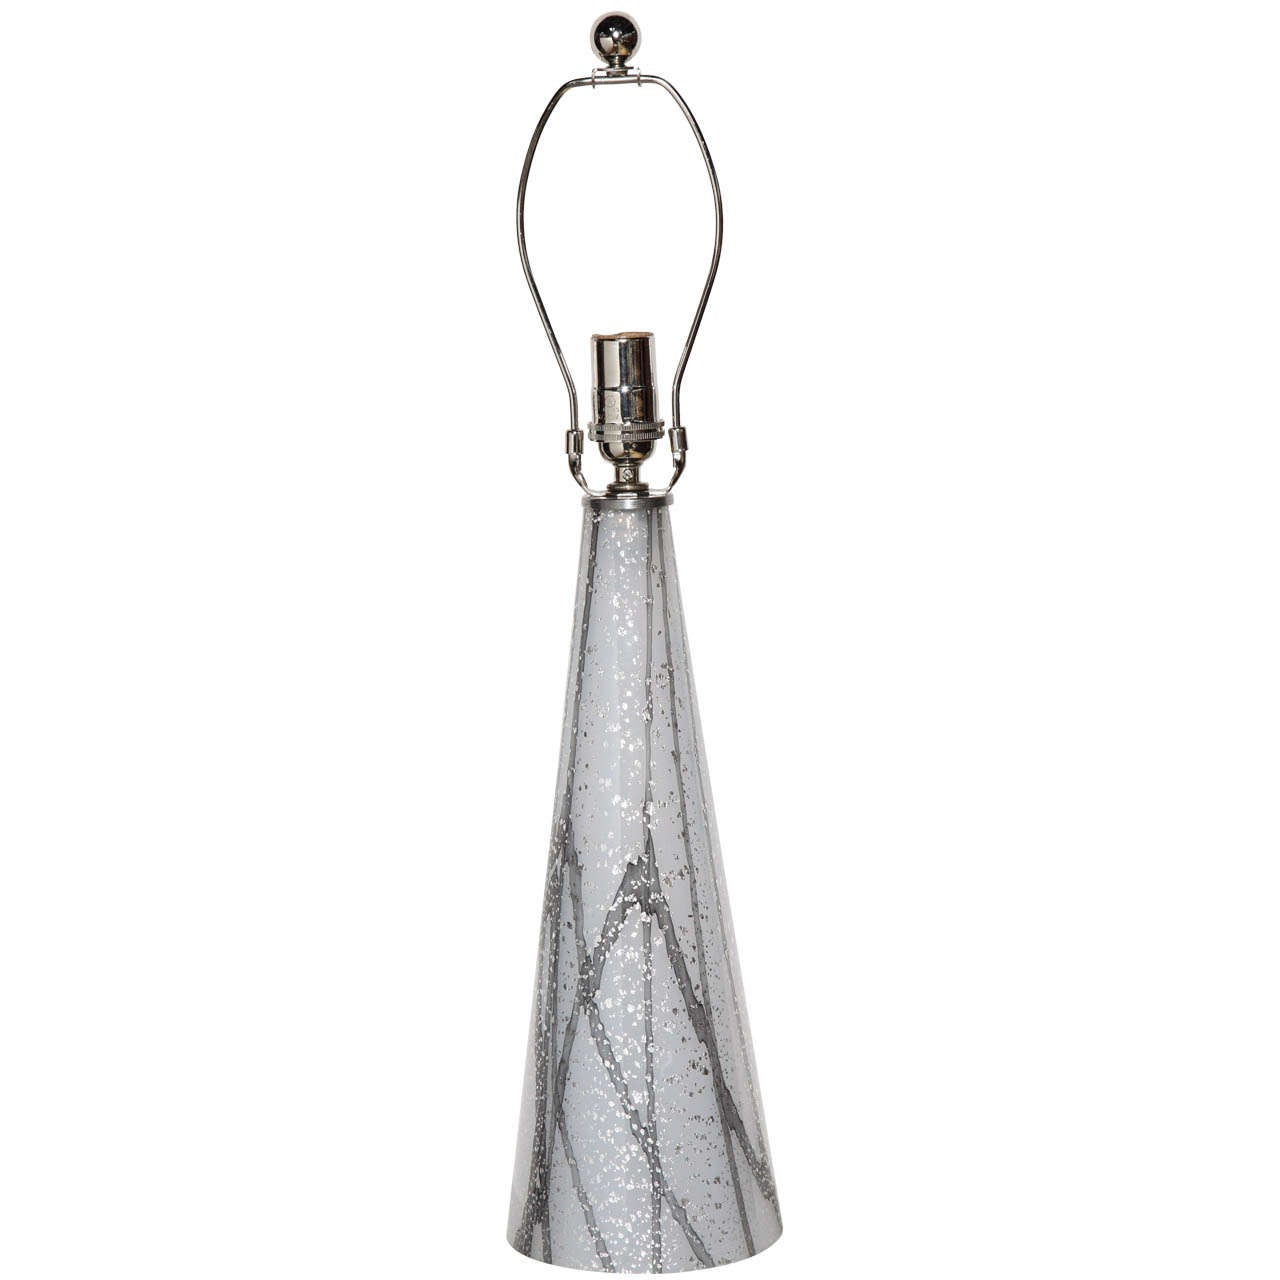 1960s Italian Modern Murano Shimmering White, Gray and Silvered Glass Table Lamp